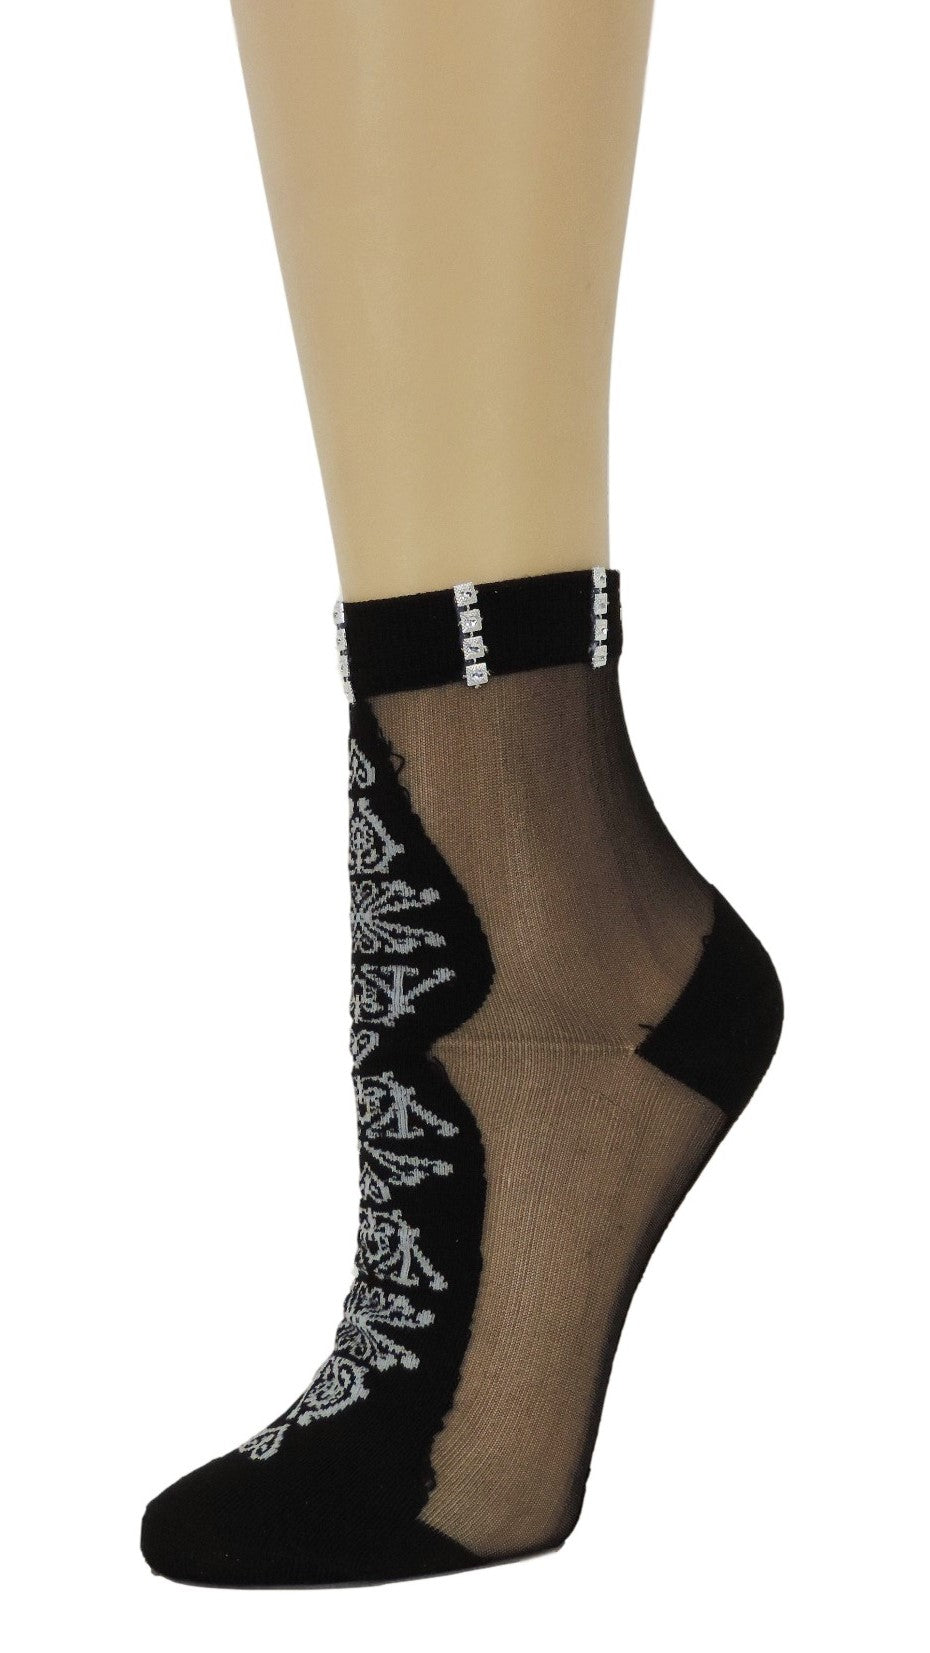 Supreme Black Custom Sheer Socks with crystals